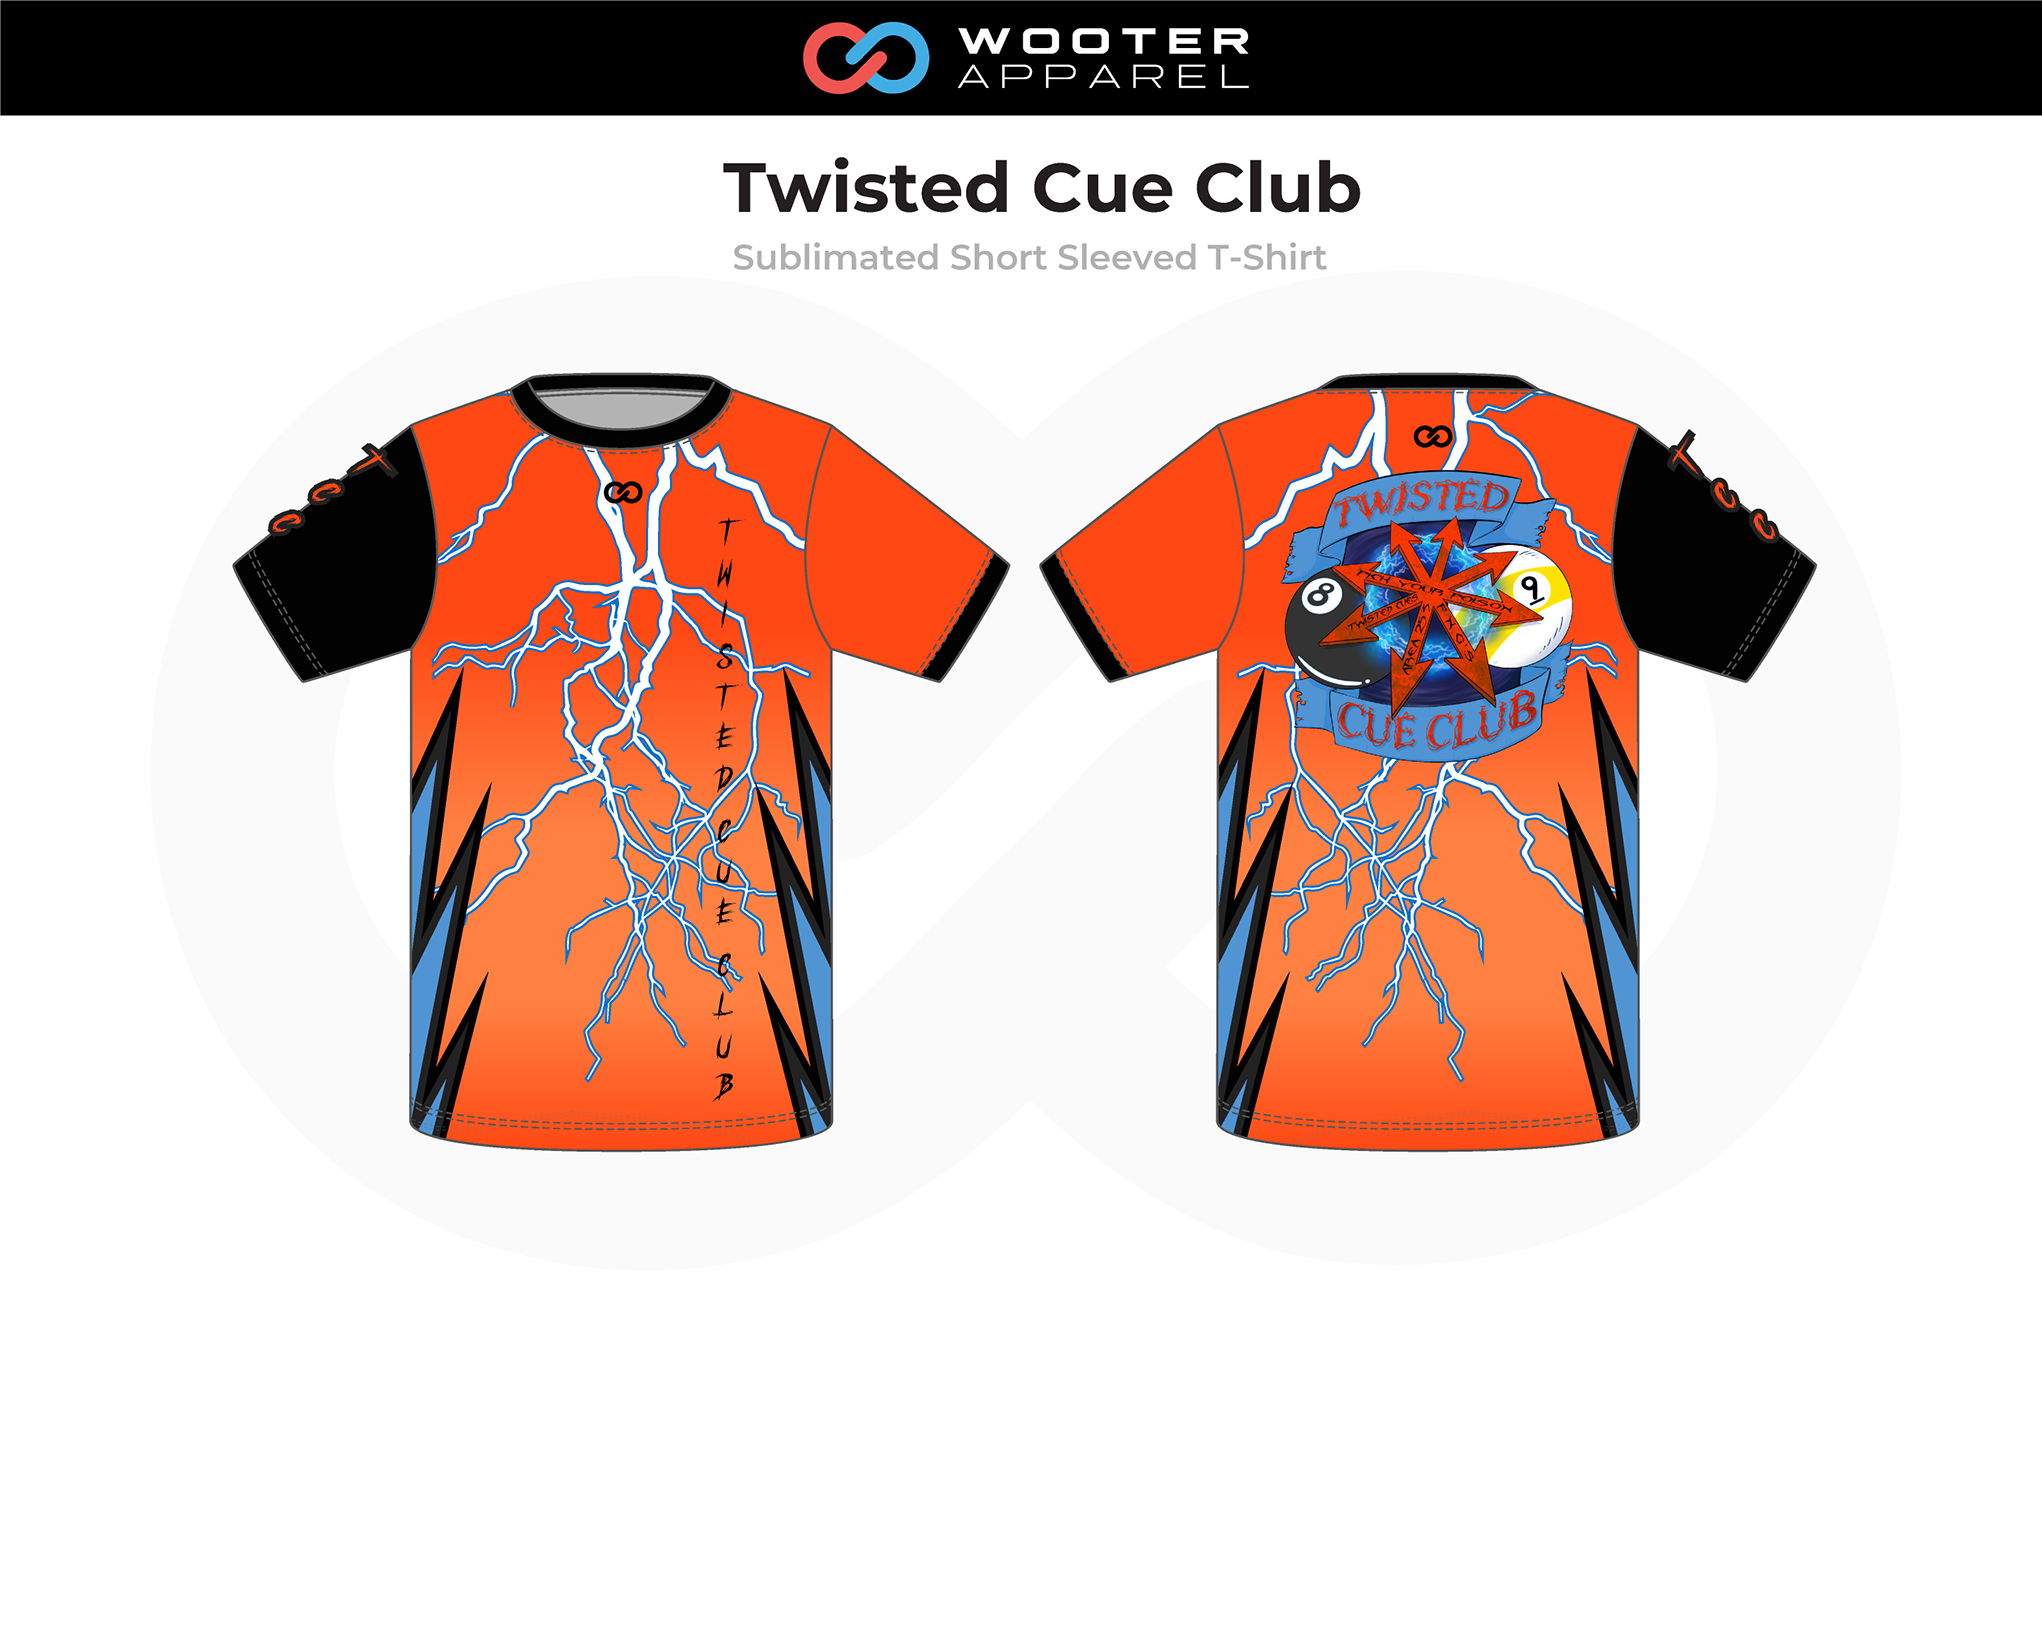 2018-12-14 Twisted Cue Club T-Shirt (Murder2).png